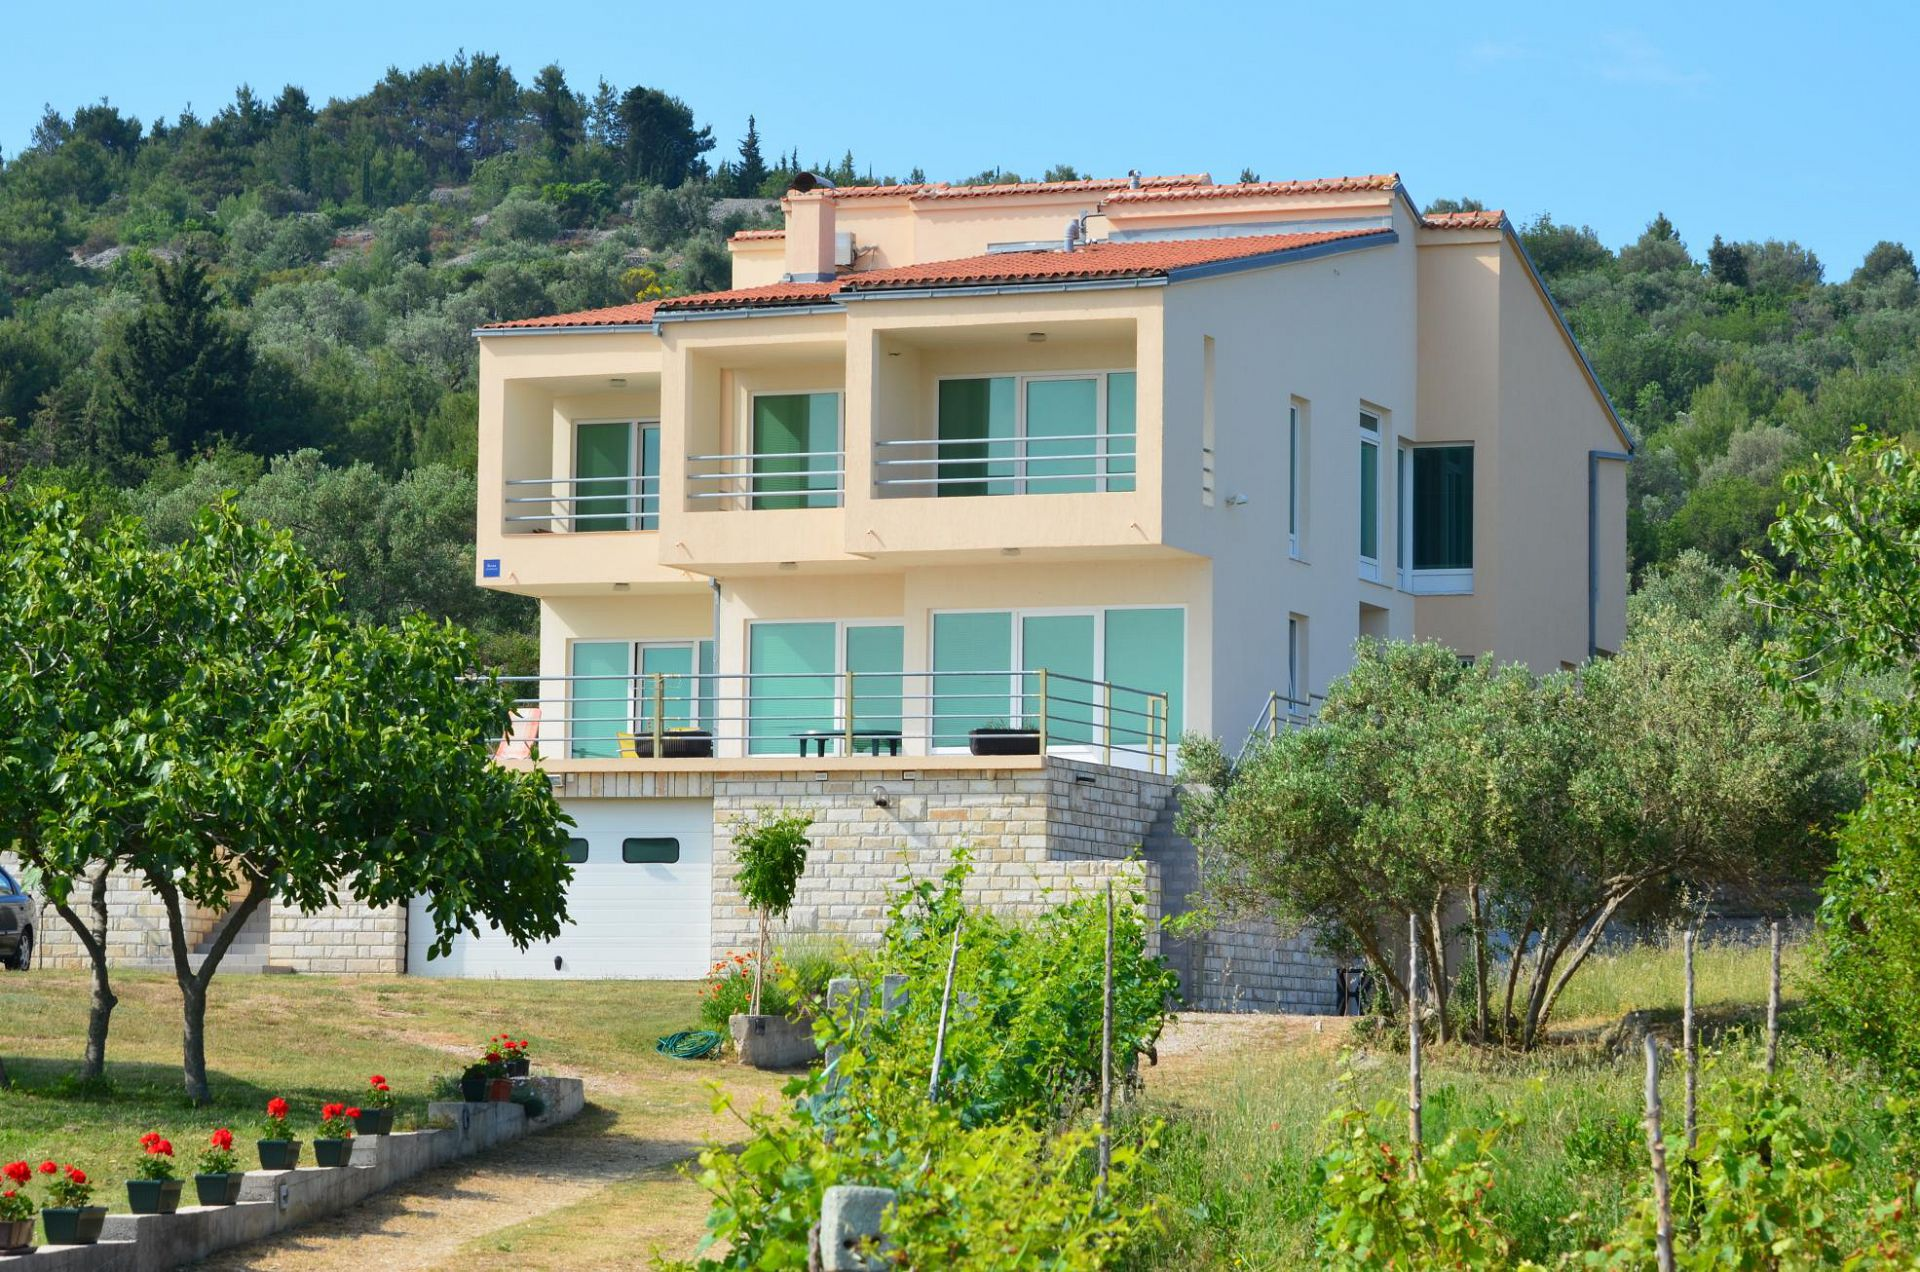 2668 - Banj - Apartments Croatia